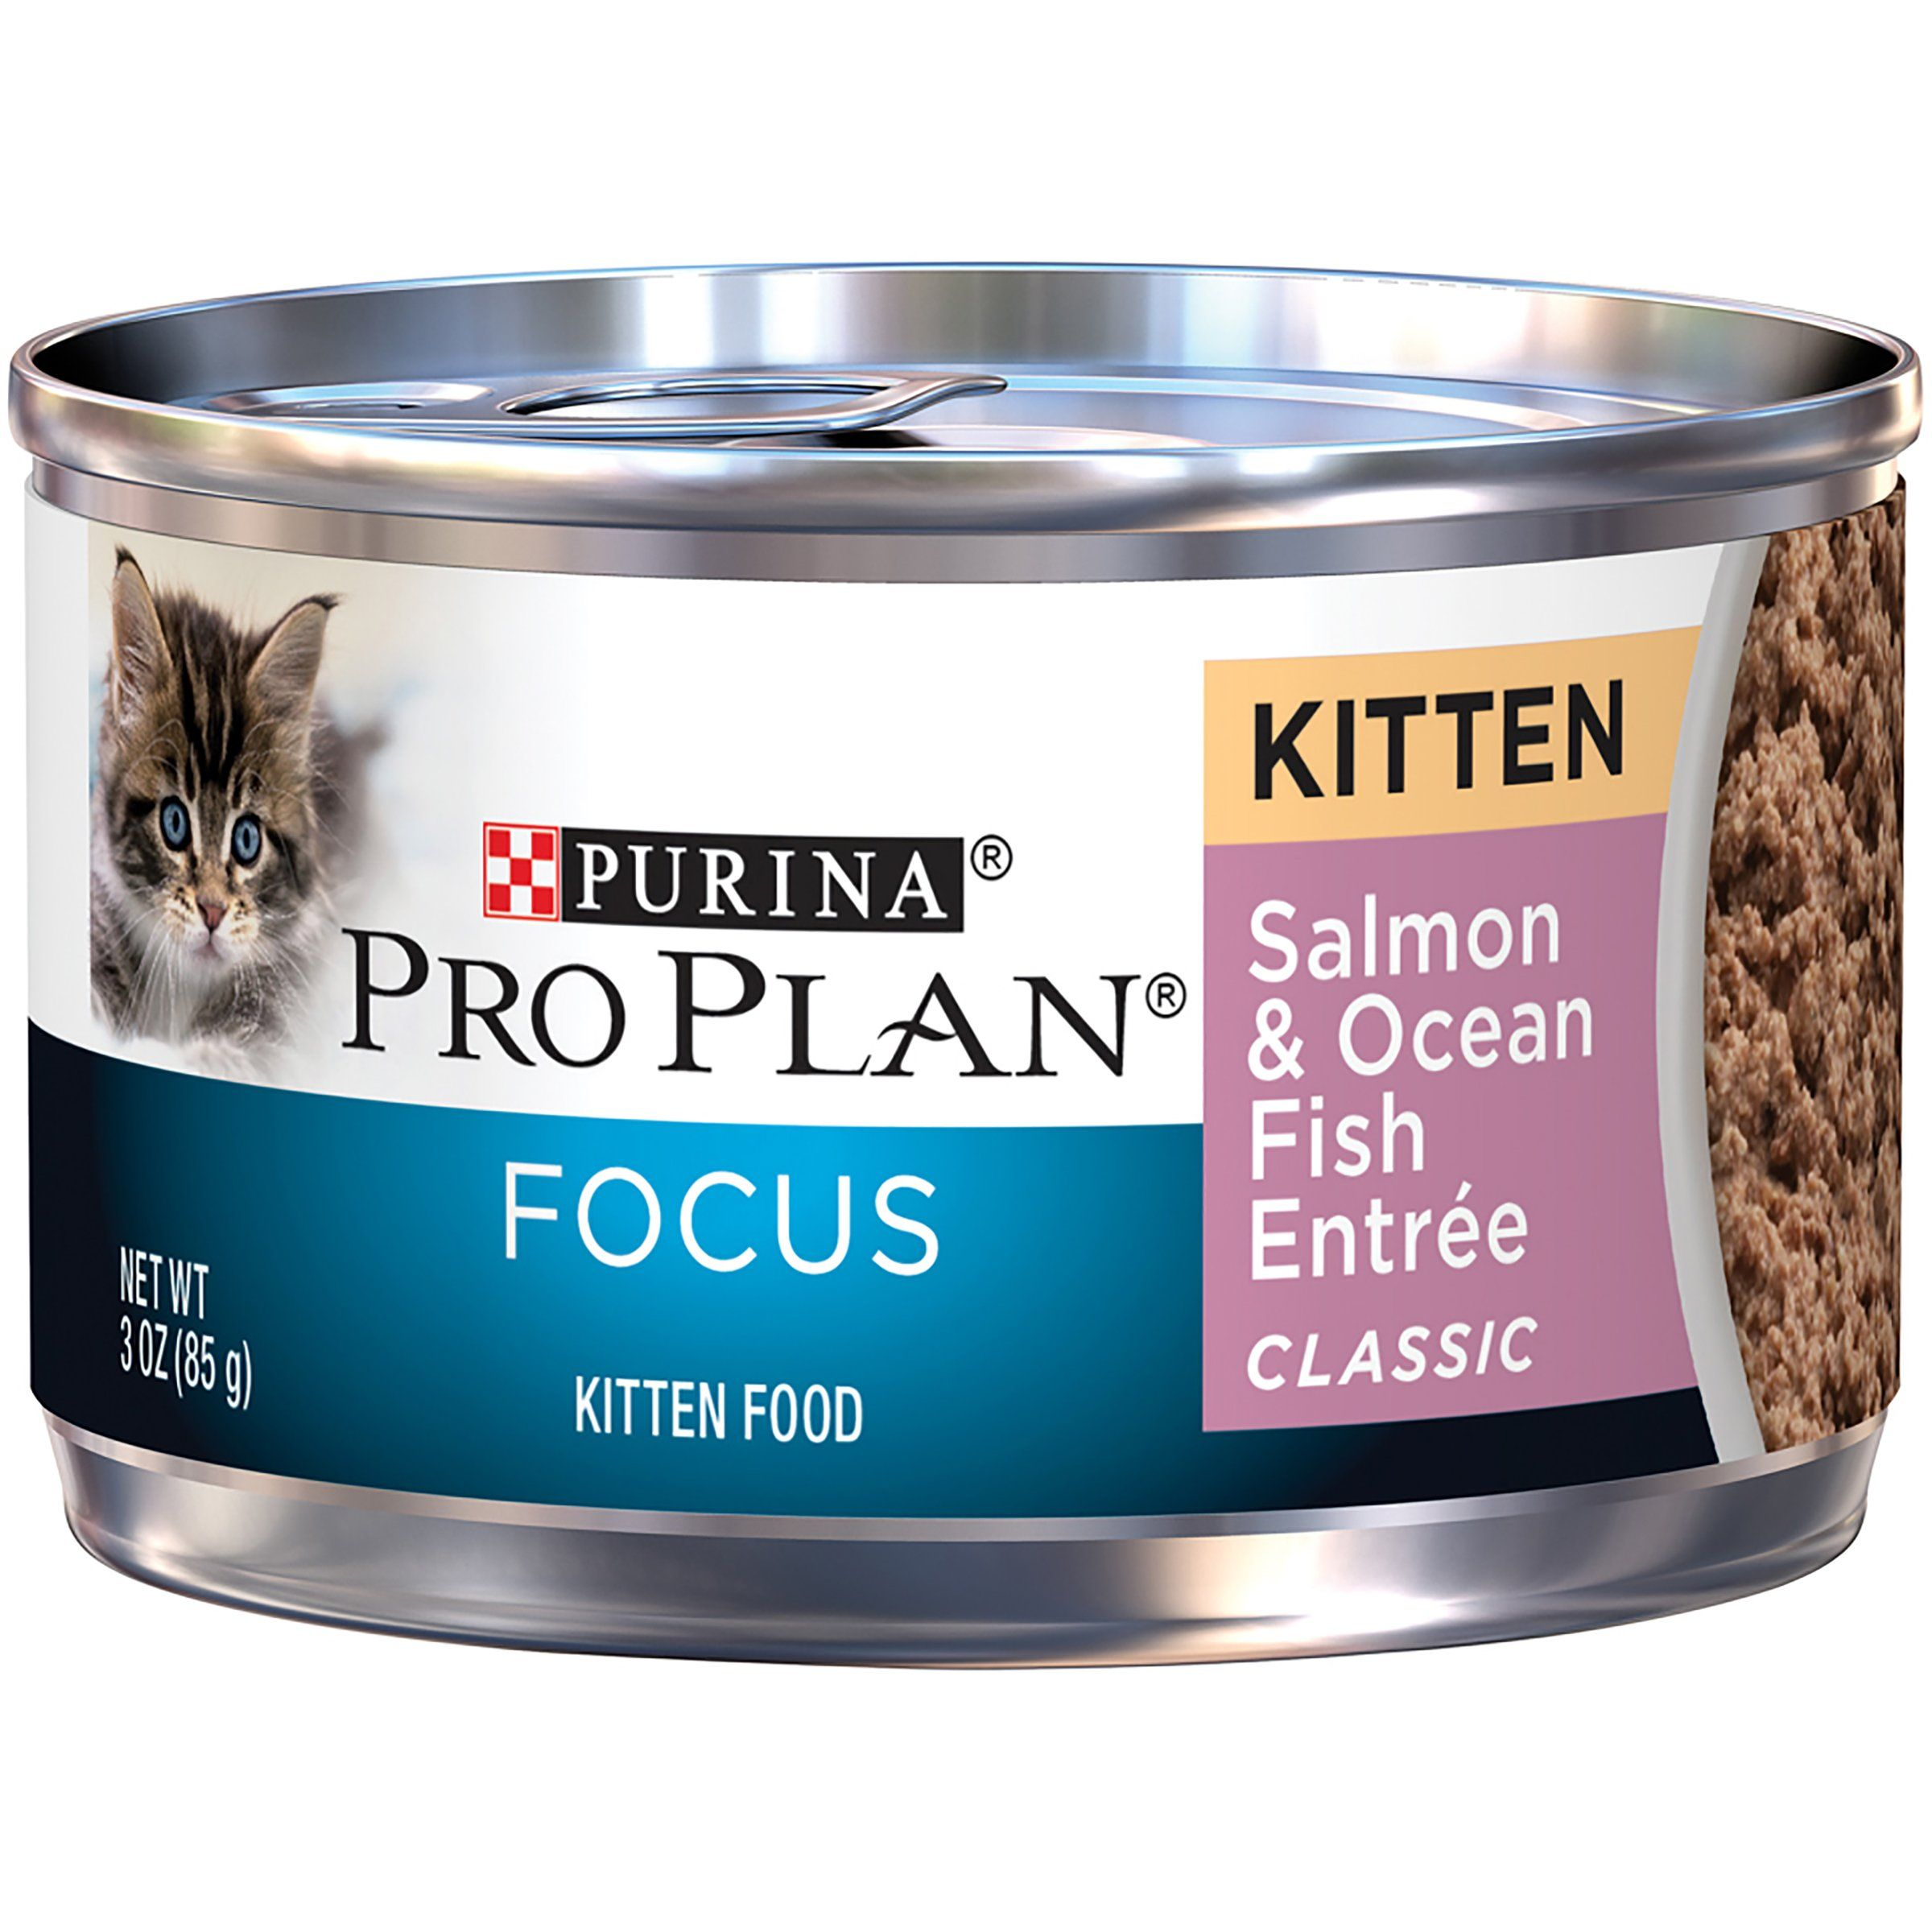 Purina Pro Plan Wet Cat Food Focus Kitten Salmon And Ocean Fish Entre 3ounce Can Pack Of 24 Find Out More Abou Kitten Food Purina Pro Plan Canned Cat Food